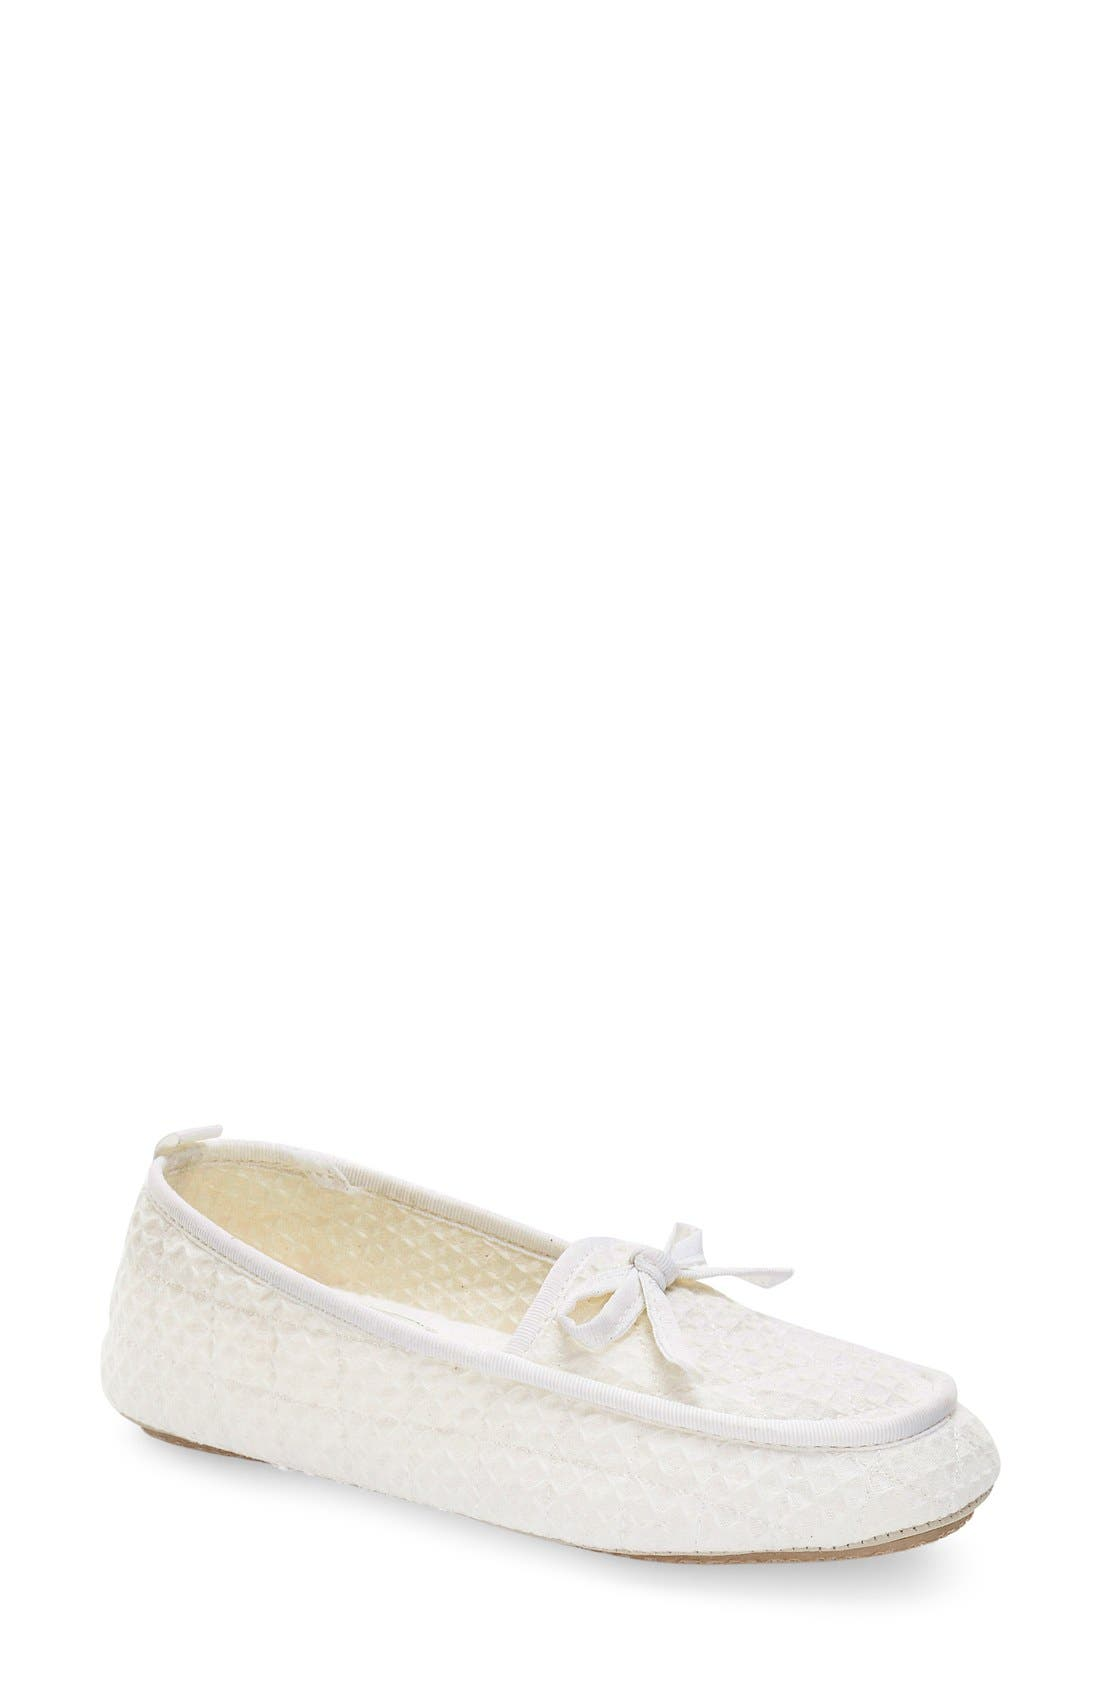 'Lizzie' Moccasin Slipper,                         Main,                         color,